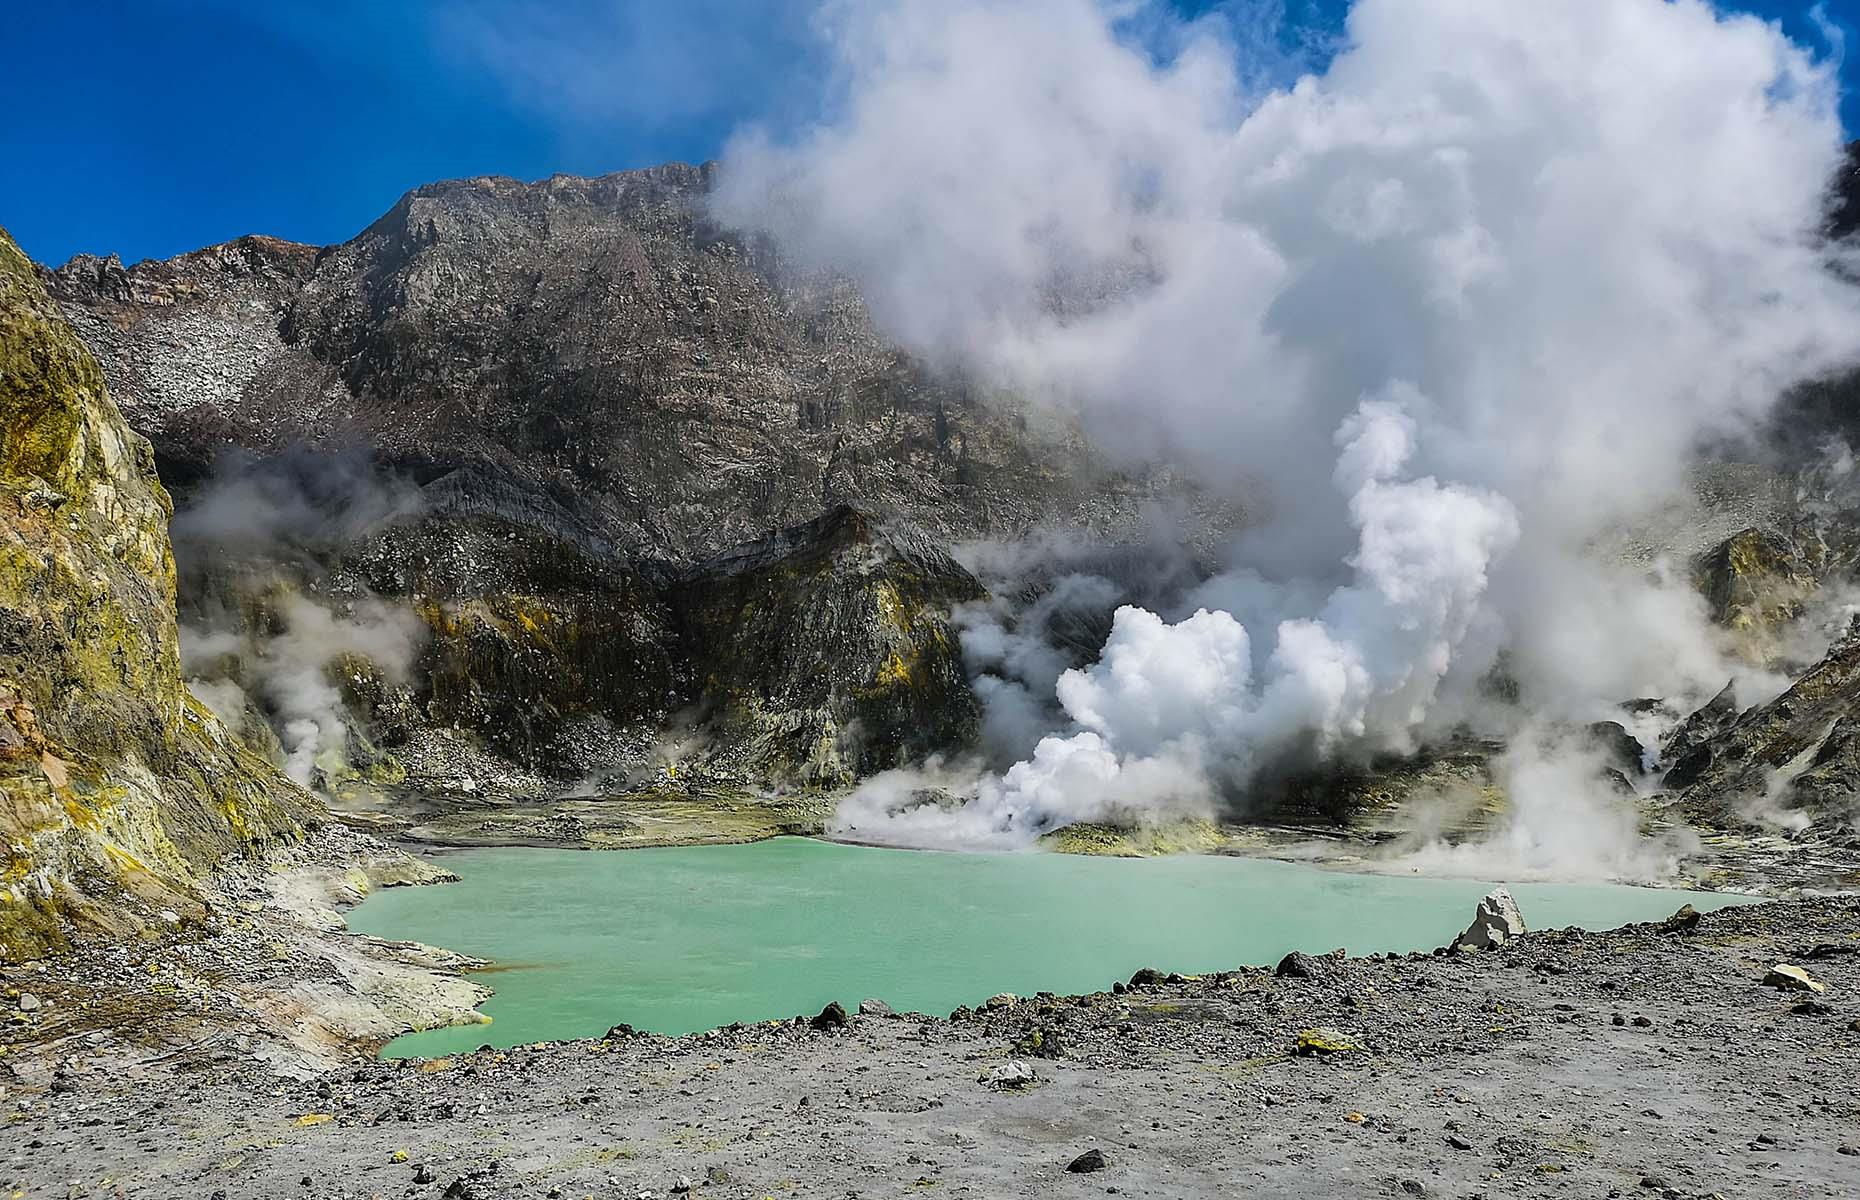 Slide 9 of 41: The otherworldly landscape is tinged yellow from the sulfur – the smell can be overwhelming and all visitors to White Island are issued with a gas mask and a hard hat. It last erupted in 2019 with tourists out on the crater and in boats in the water nearby. Sadly, 20 people perished in the eruption and tours have been suspended ever since.